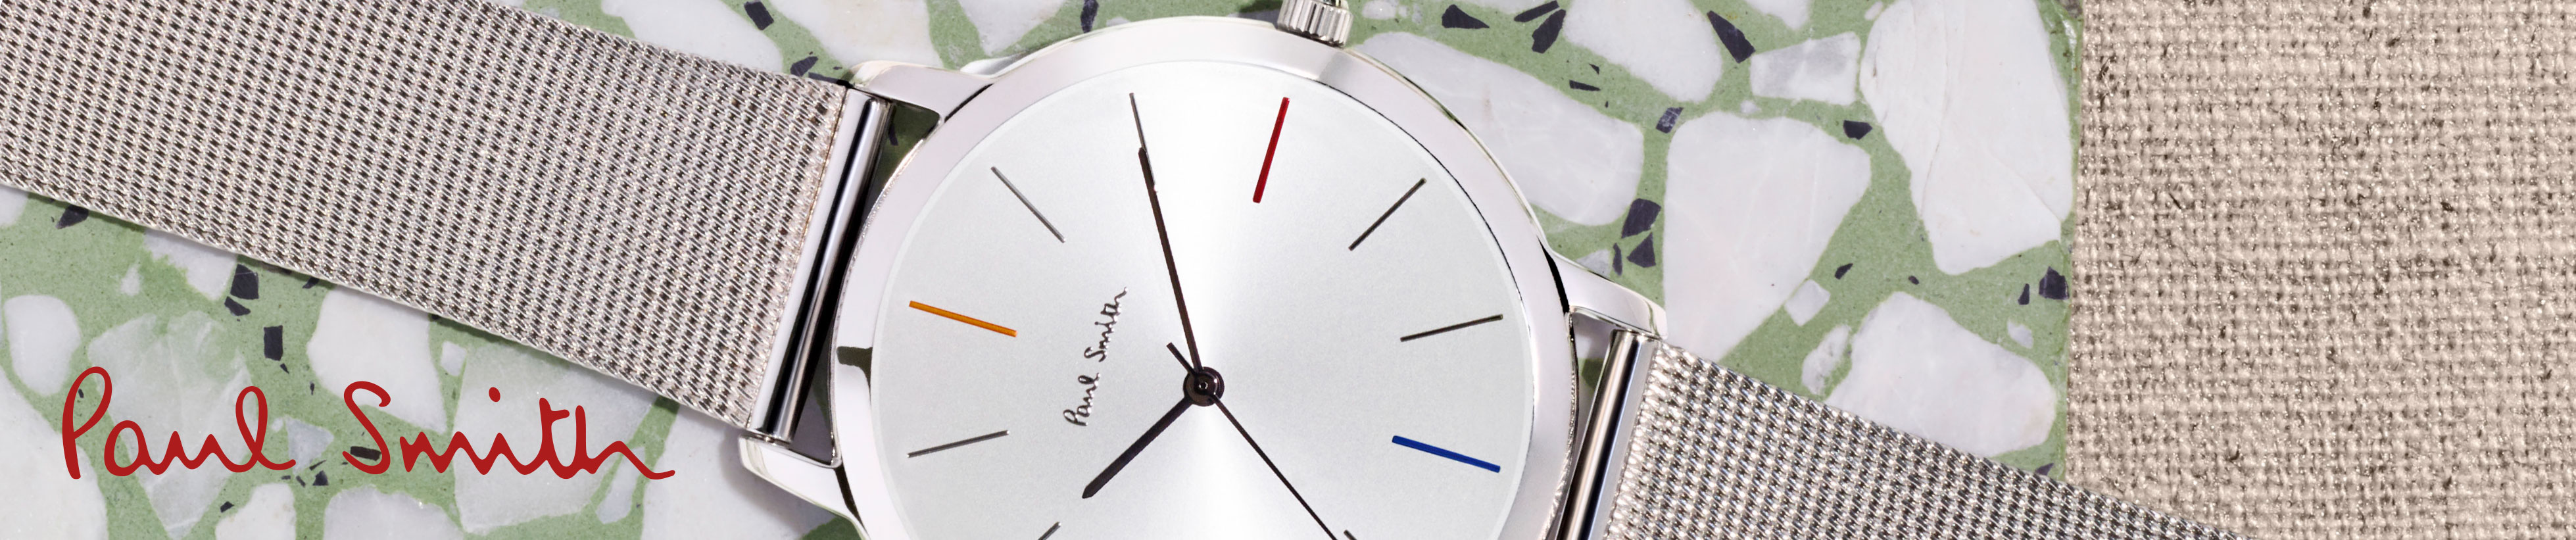 Paul Smith Watches